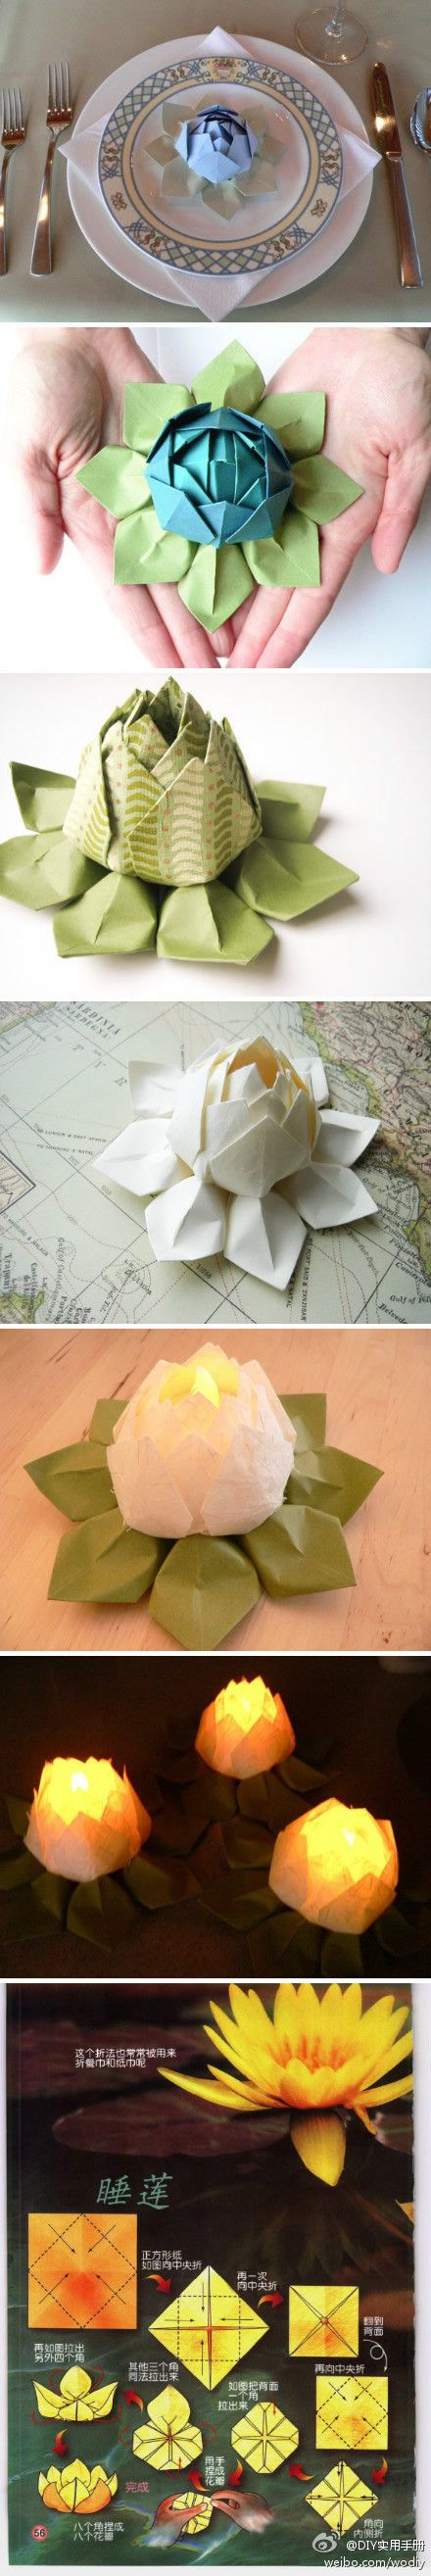 Orgami for table dressing